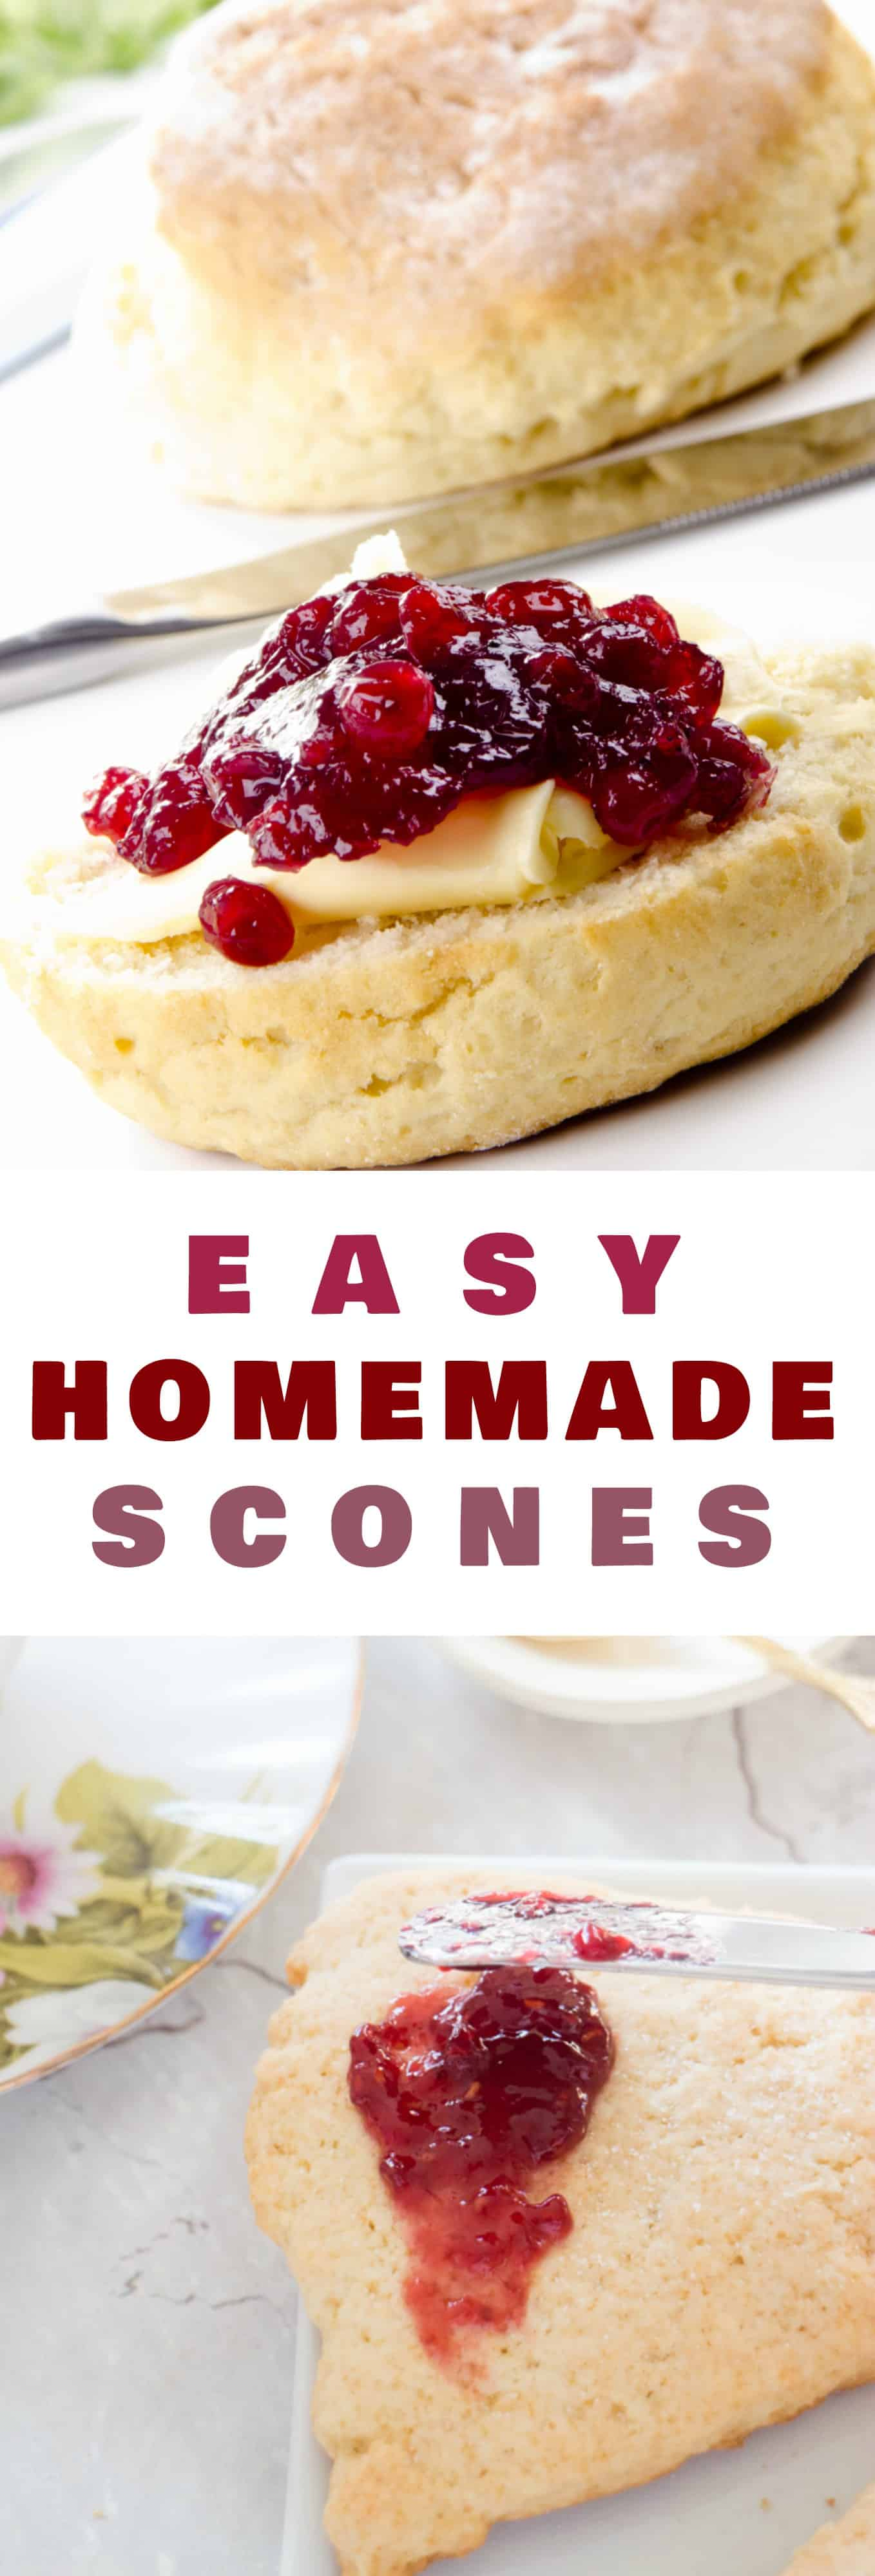 EASY delicious Homemade Scones that are perfect to serve with clotted cream, jam and tea! This is a one bowl recipe that creates crumbly English soft scones – just like at a tea house. The secret to this recipe is sour cream! Add blueberry or raspberry to them to make them berry flavored!